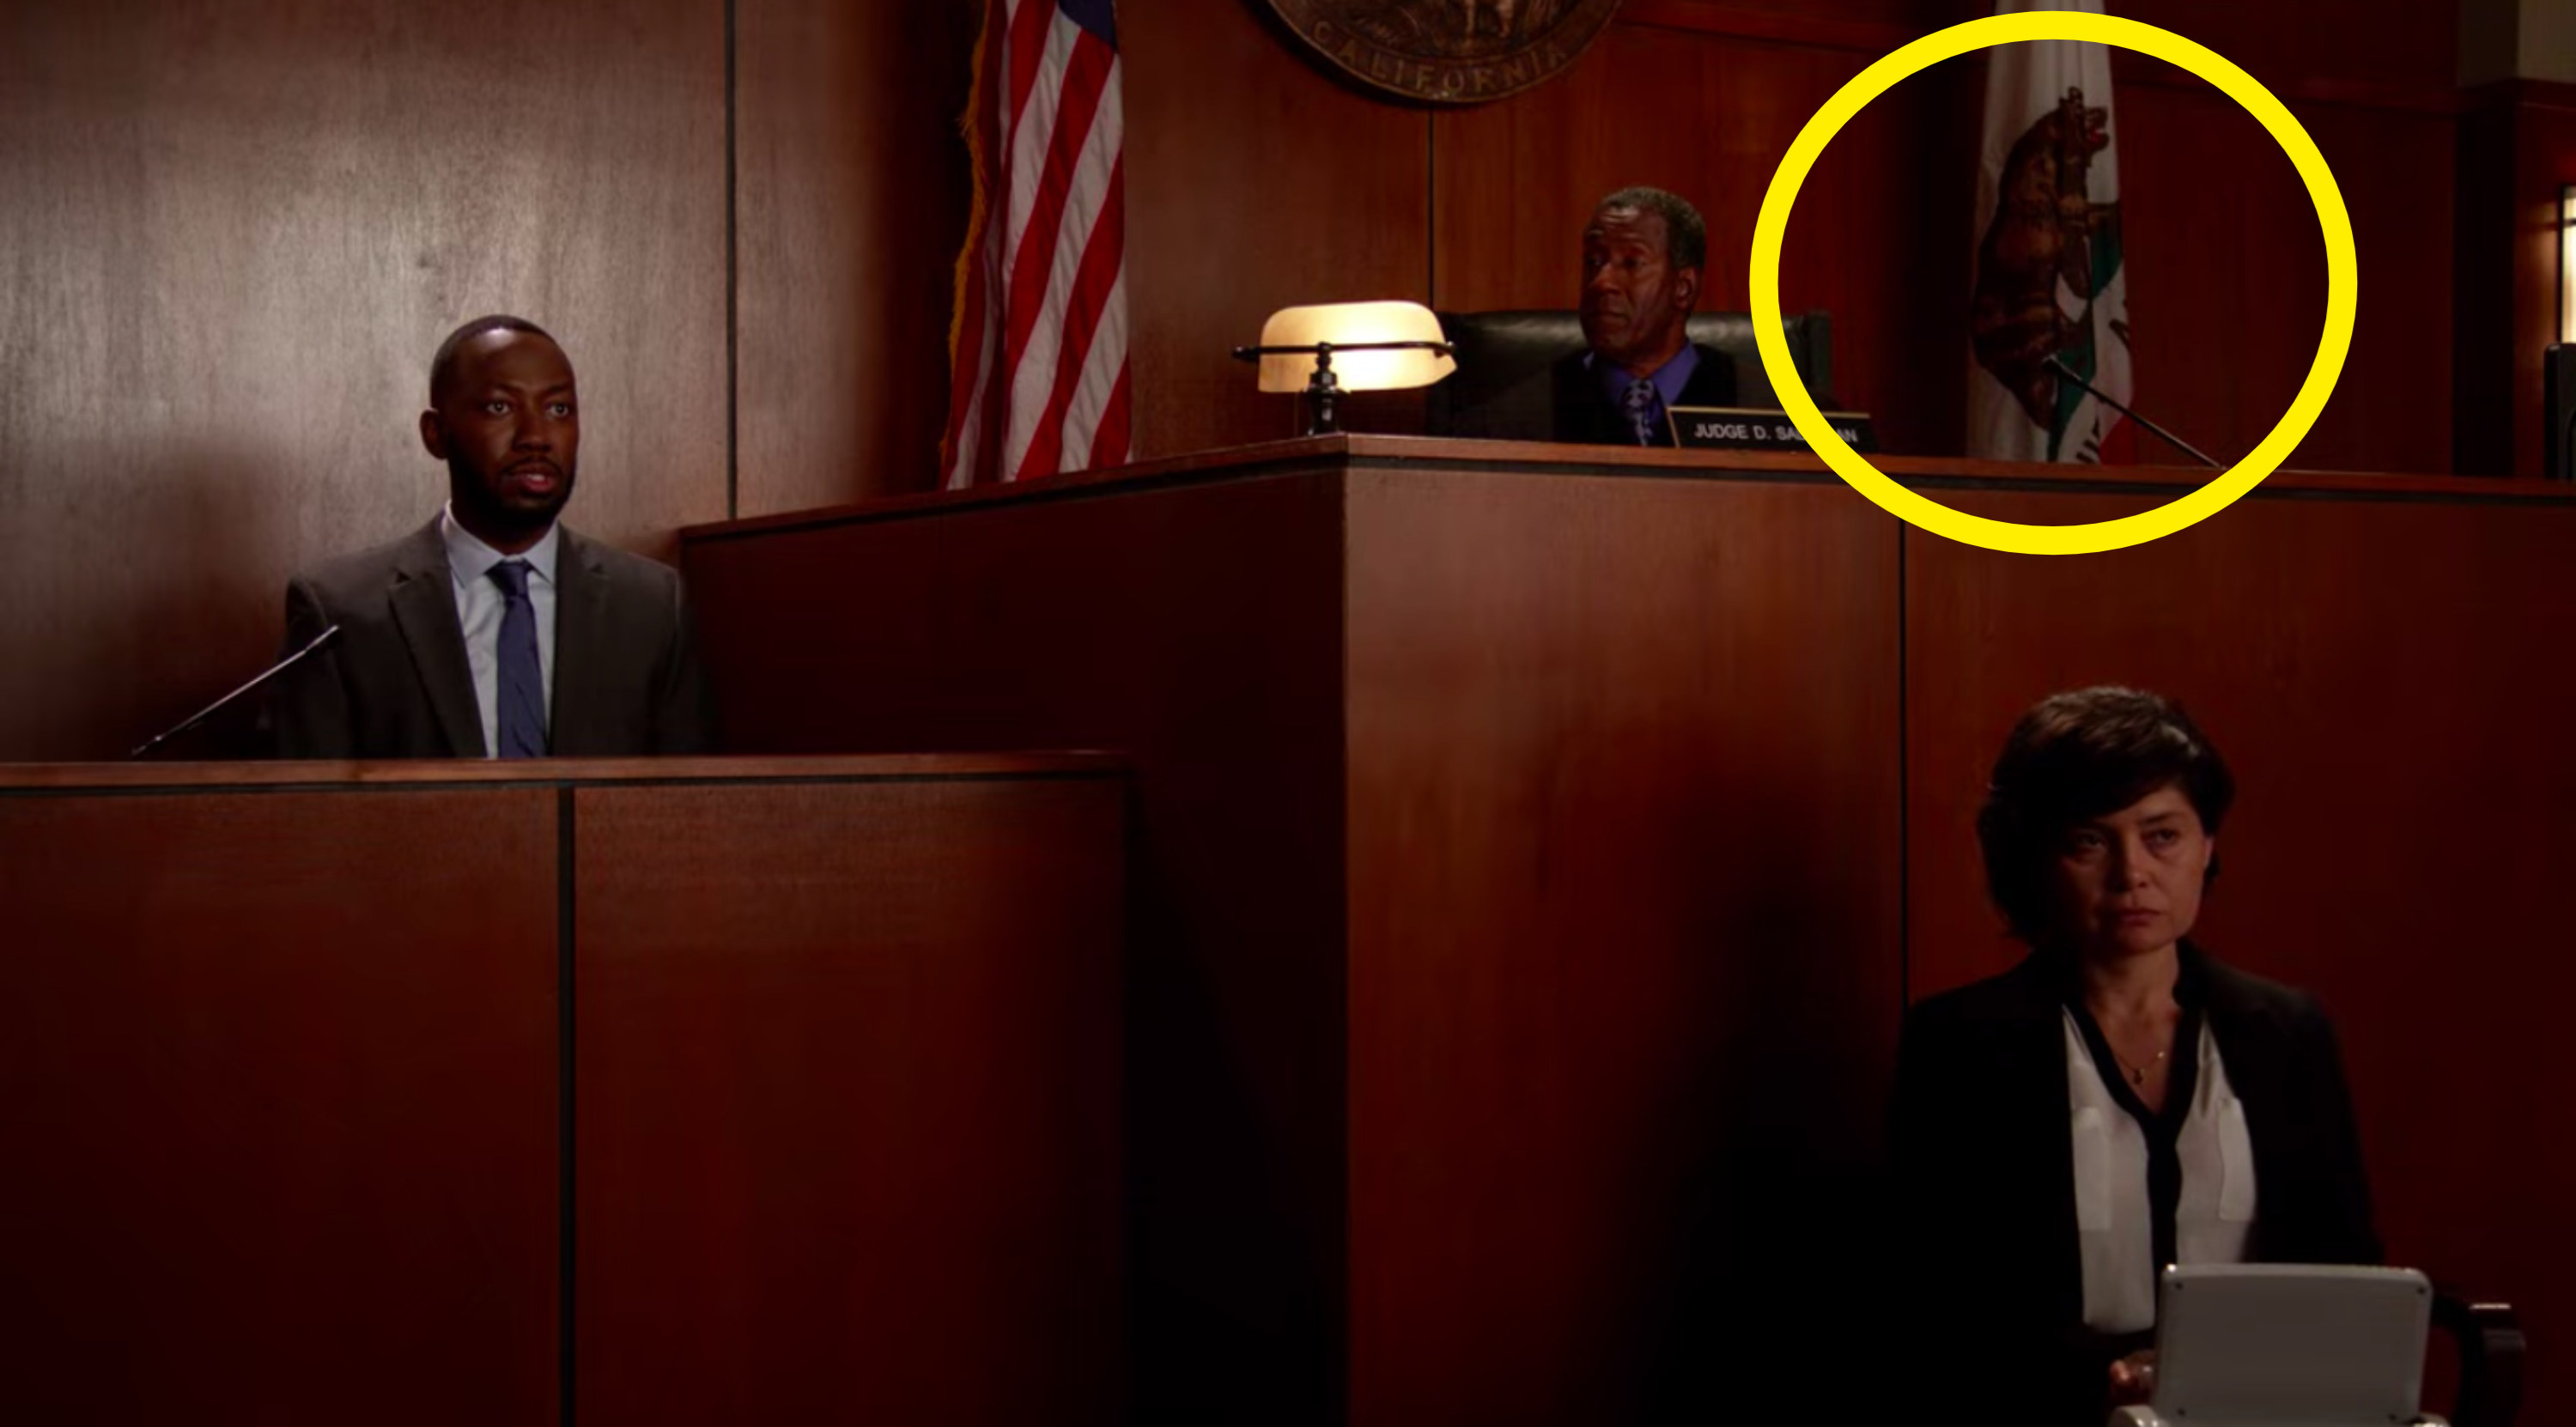 The California state flag, which has a bear on it, is in a court room